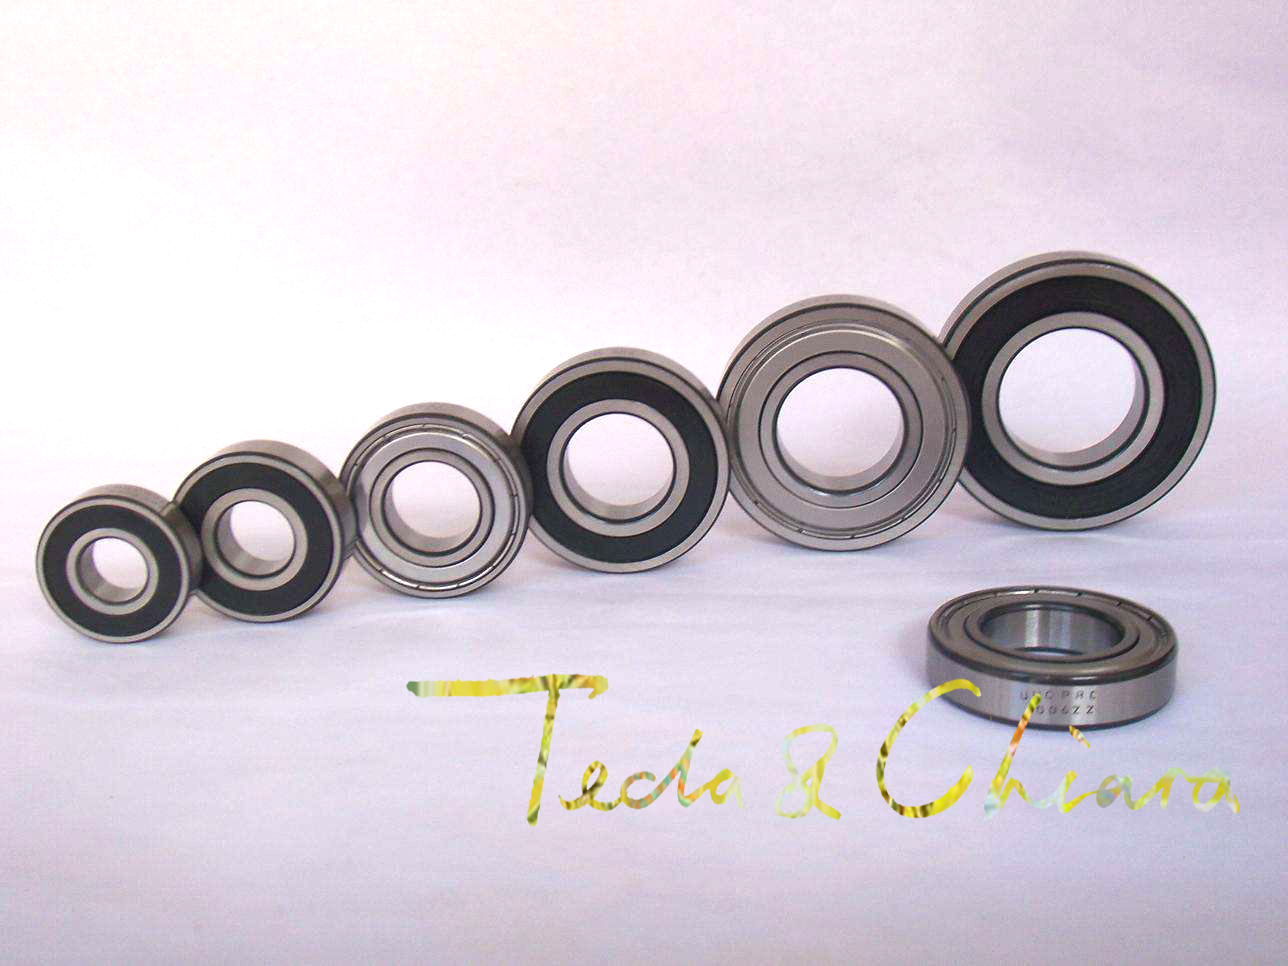 6904 6904ZZ 6904RS 6904-2Z 6904Z 6904-2RS ZZ RS RZ 2RZ Deep Groove Ball Bearings 20 x 37 x 9mm High Quality